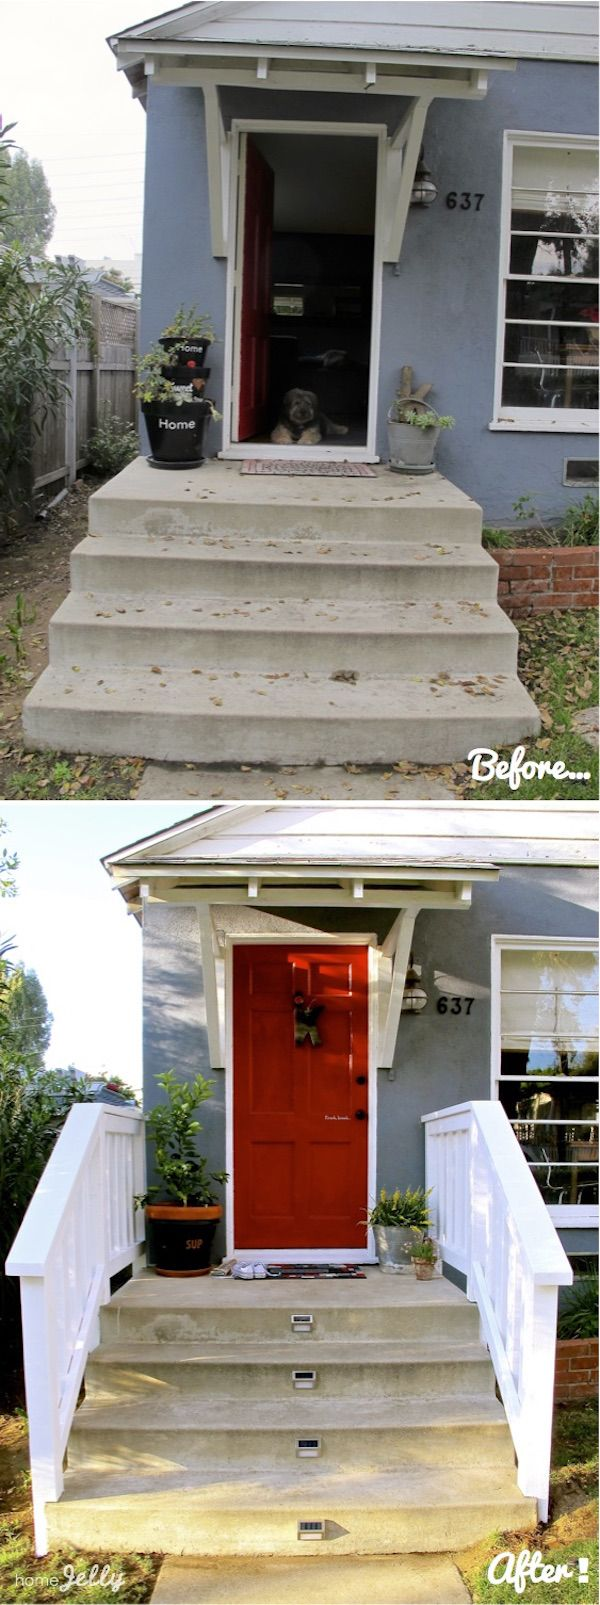 Skaie Knox of @HomeJelly added railings to her front porch after she realized they weren't up to her neighborhood code! See the full transformation and her cute dog by visiting the story.